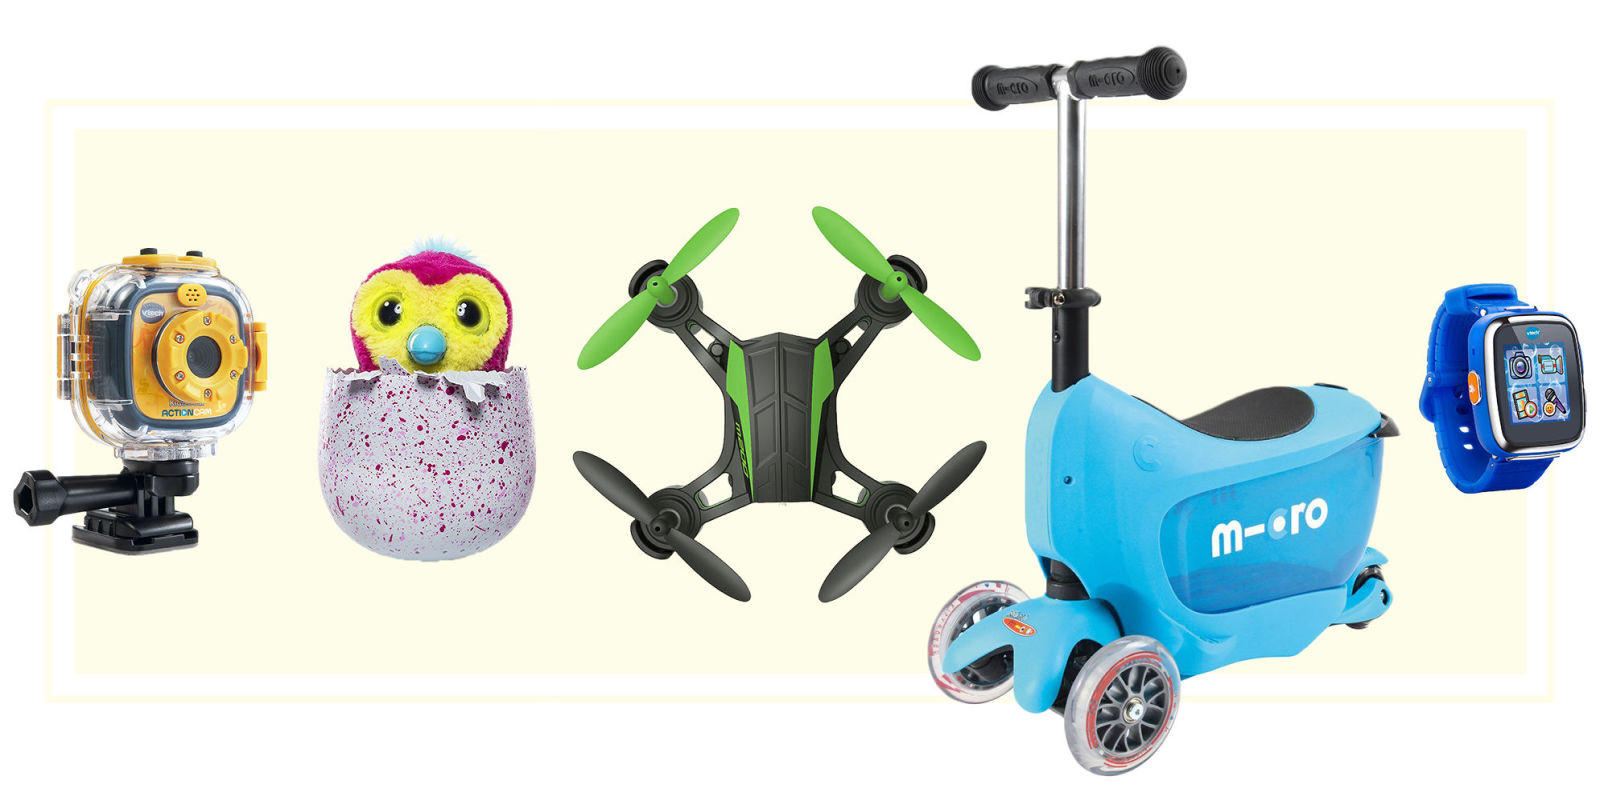 40 Best Christmas Gifts For Kids In 2017